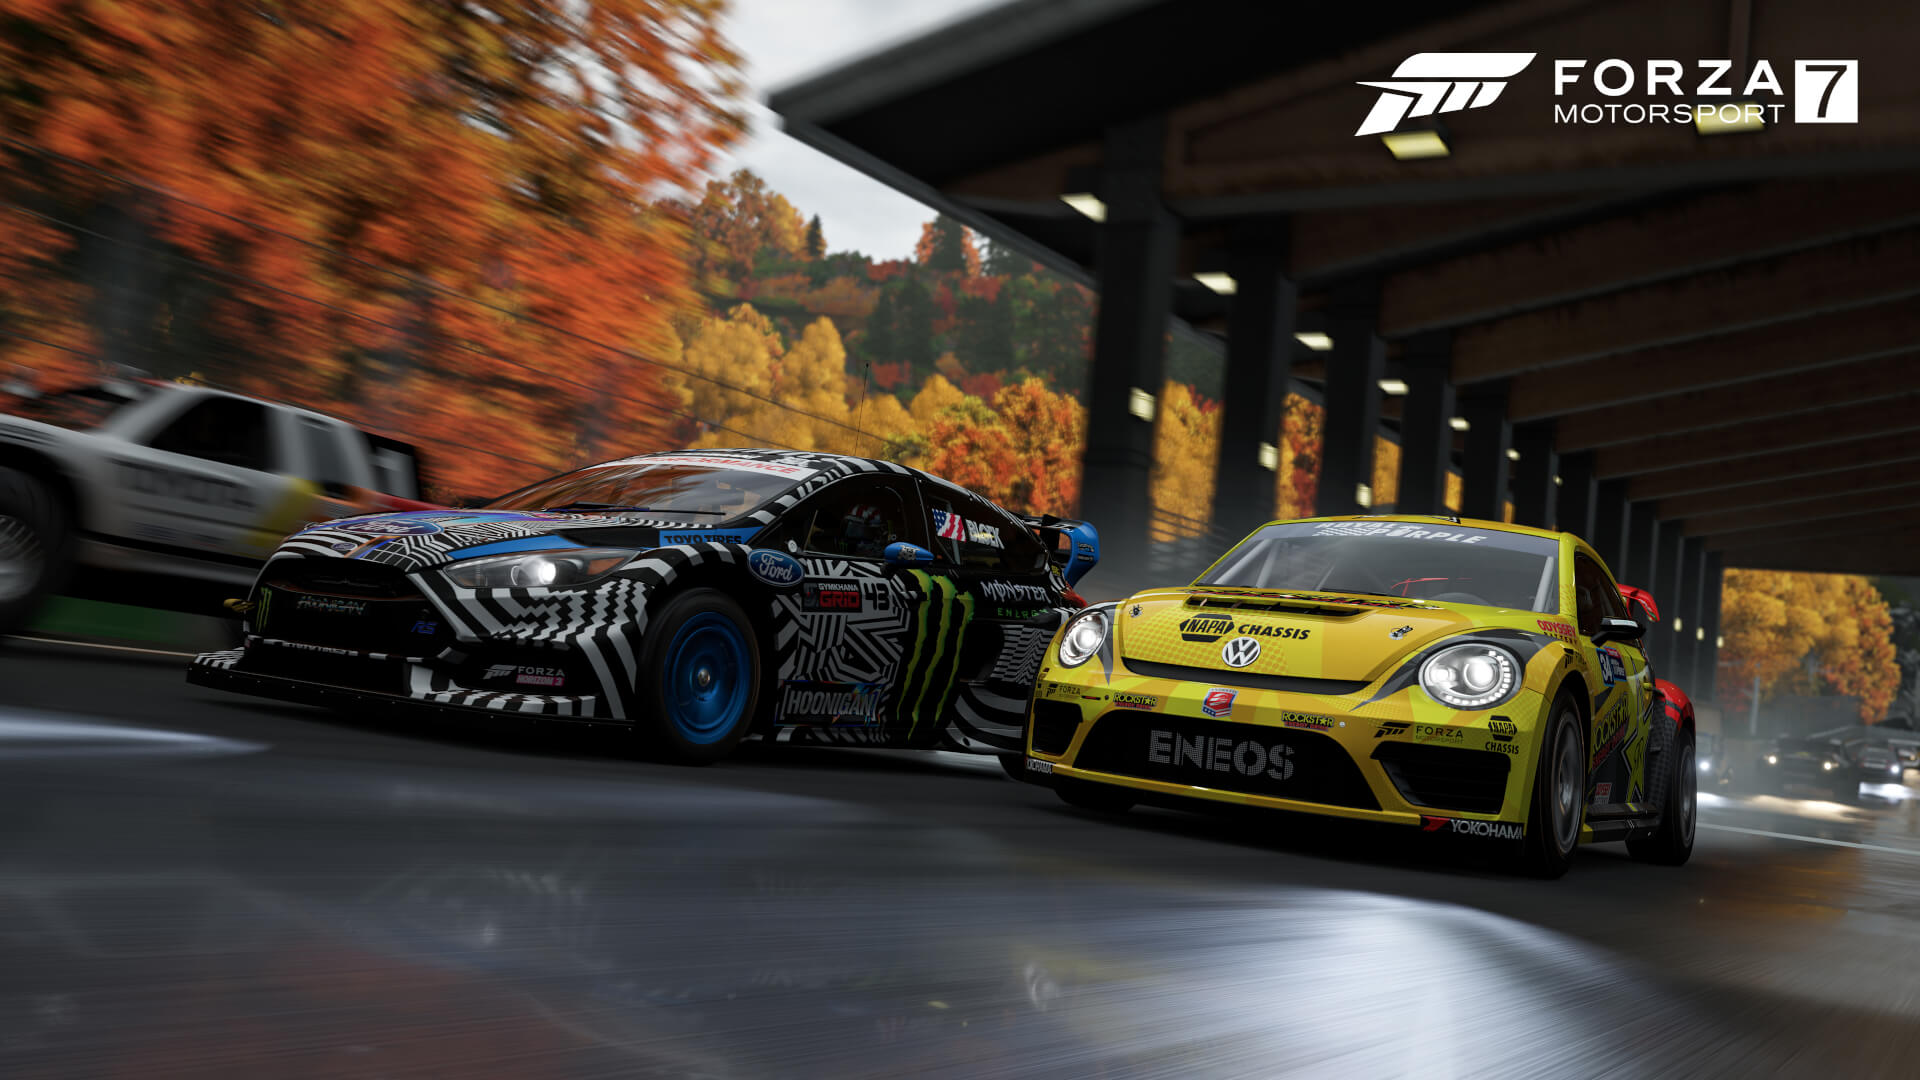 On Xbox One X Forza Motorsport 7 Runs In Native 4K Resolution With High Assets Addition Theres Also Improved Lighting And Shadows